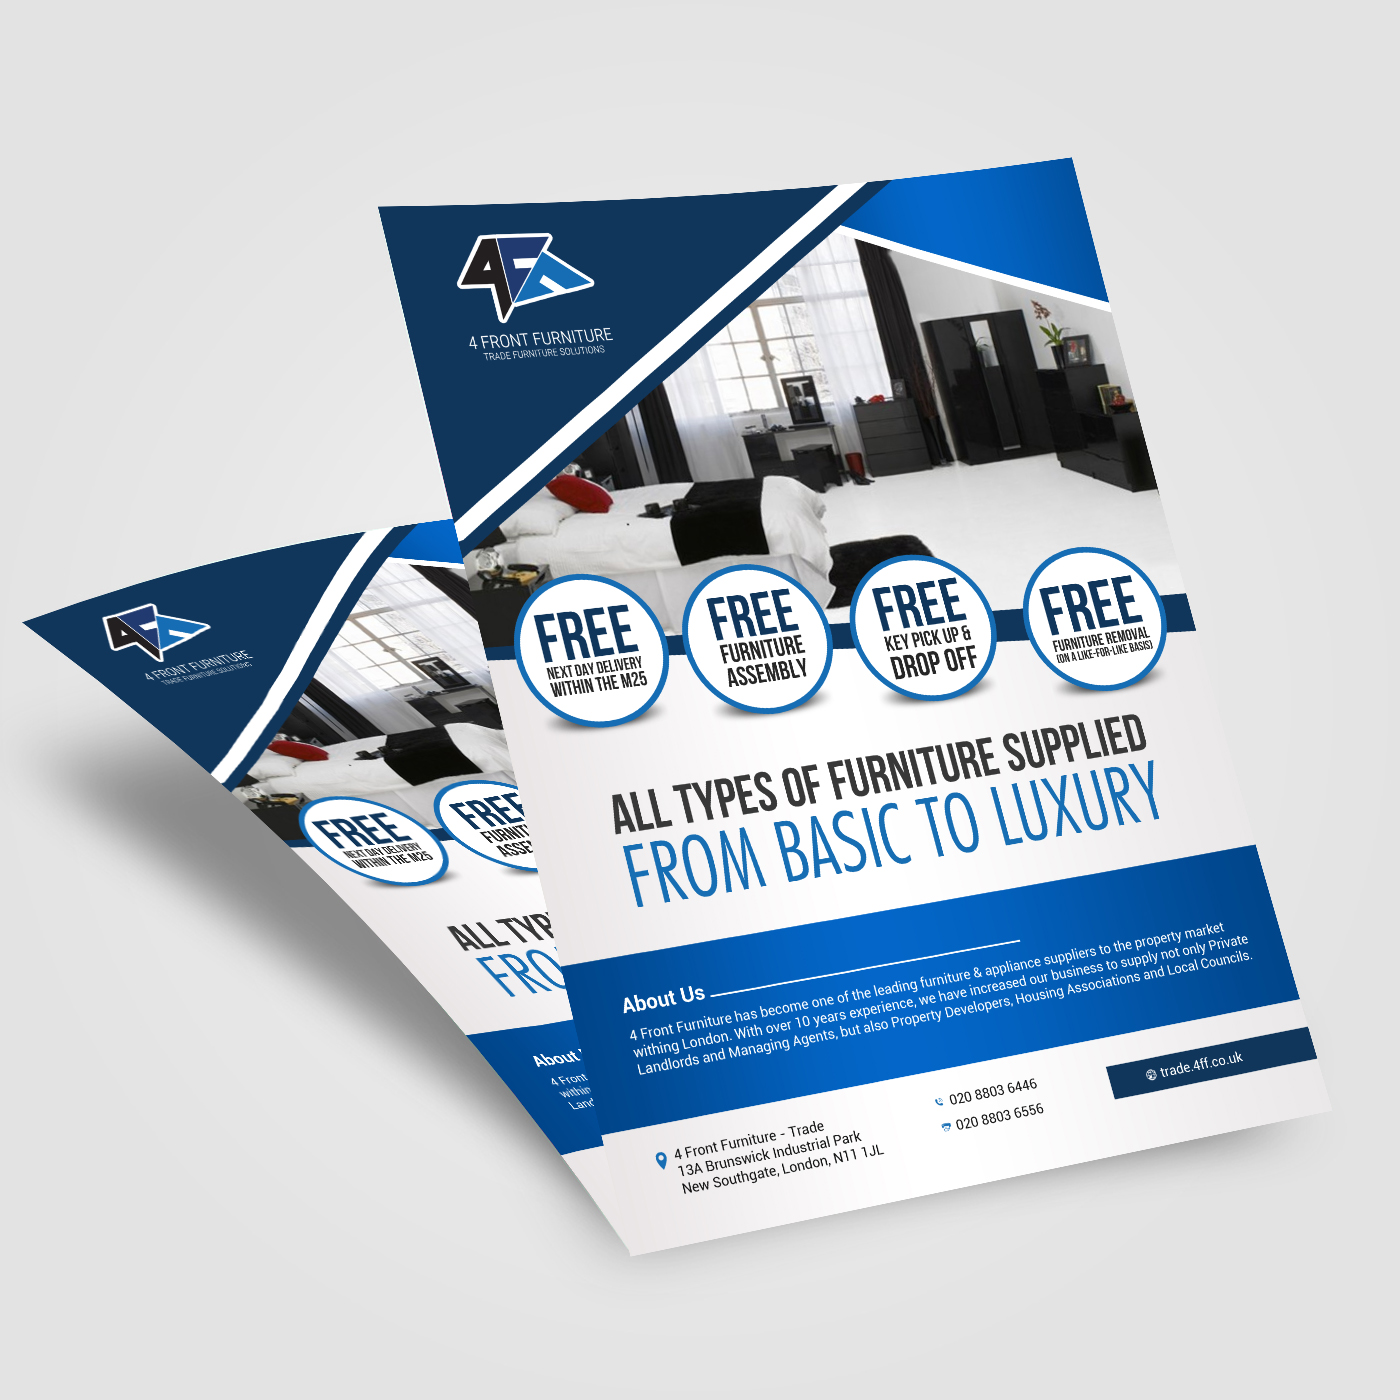 Flyer Design By Creative.bugs For This Project | Design #12296290